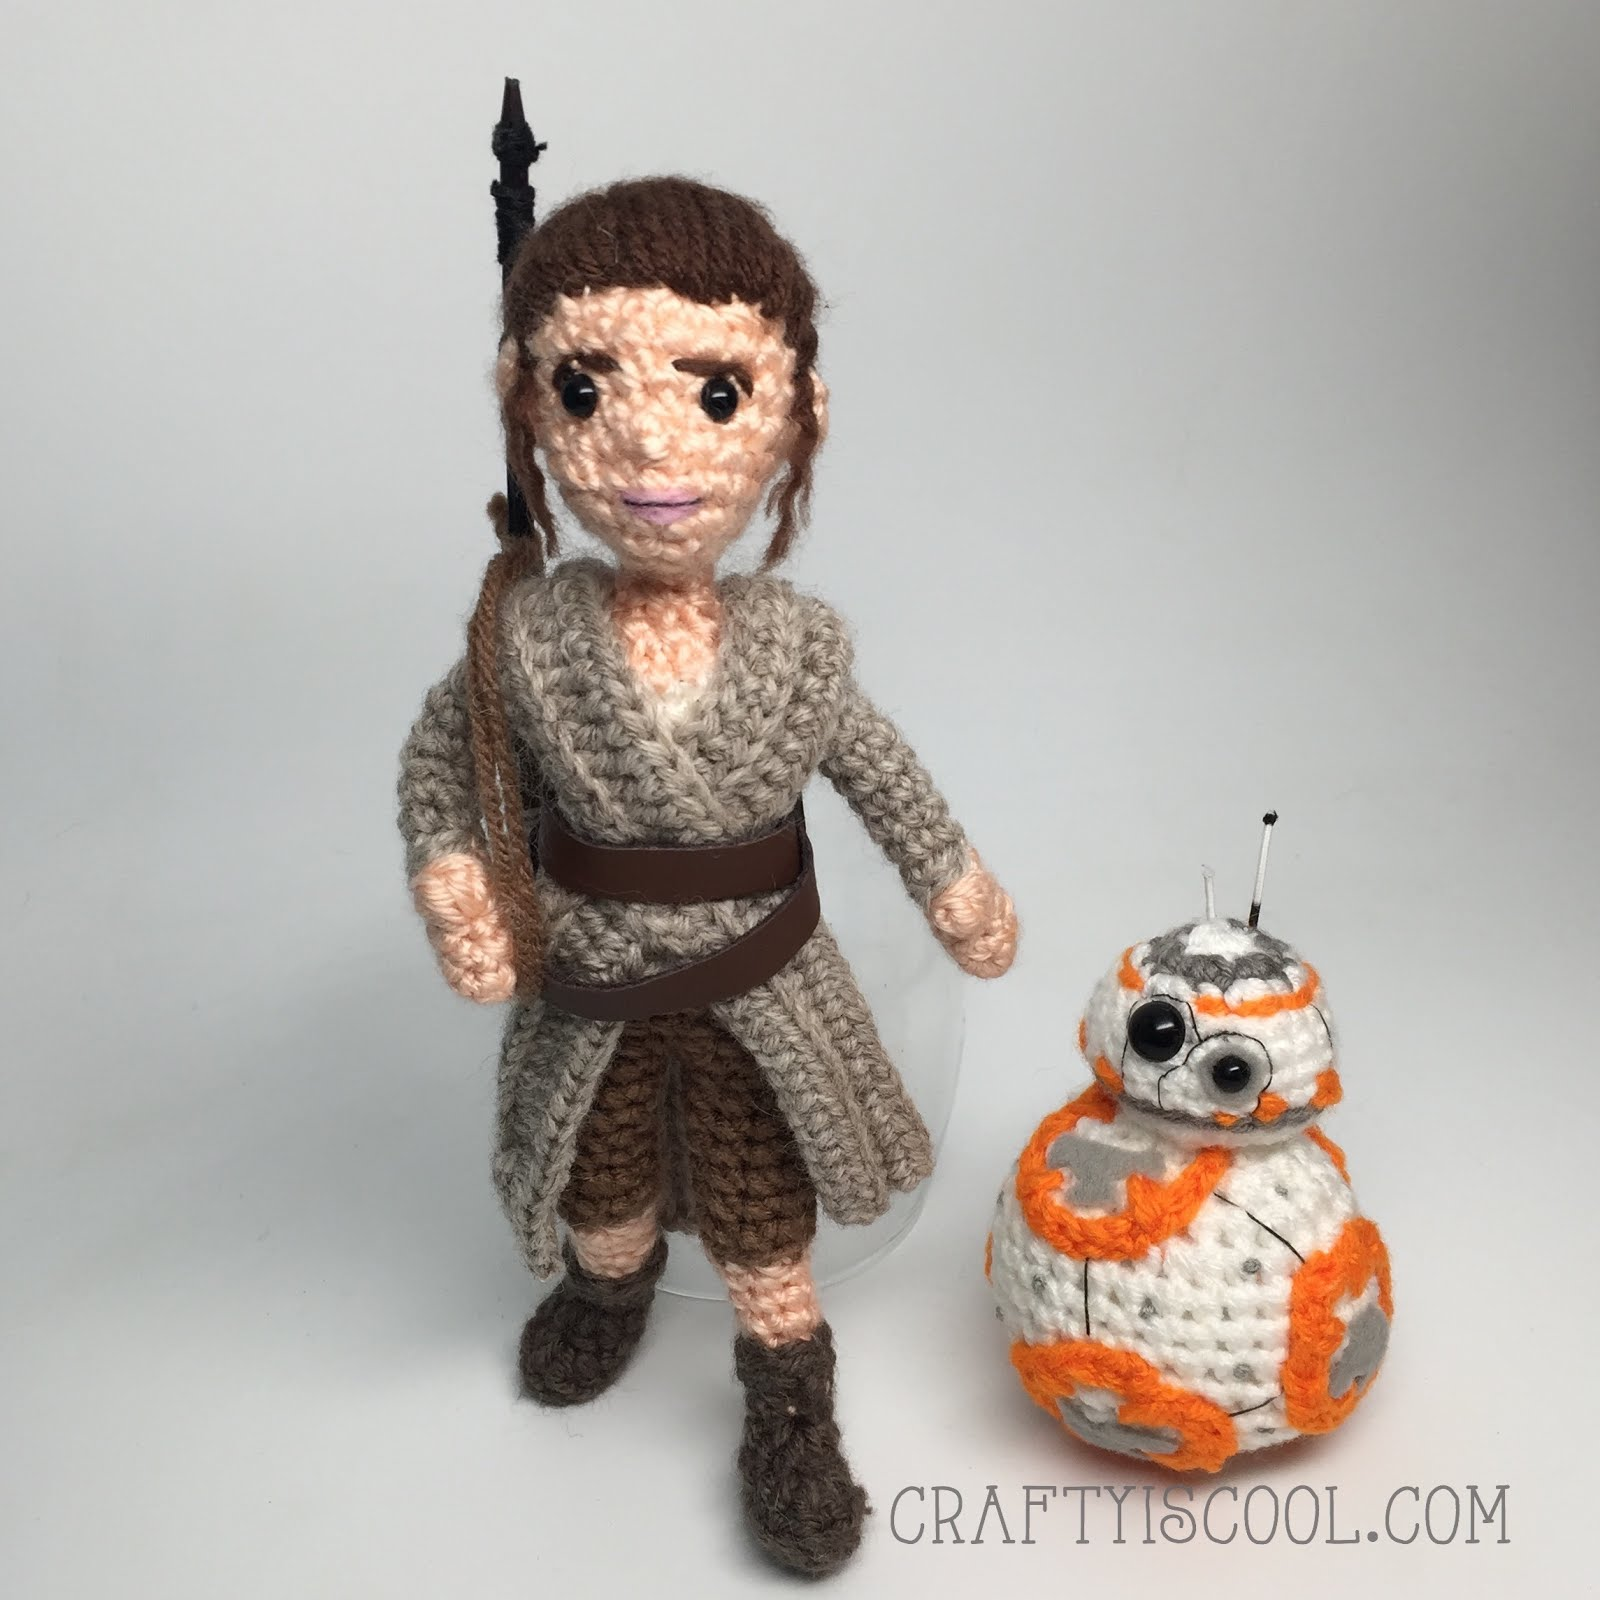 CRAFTYisCOOL: Happy New Year with BB-8! FREE pattern